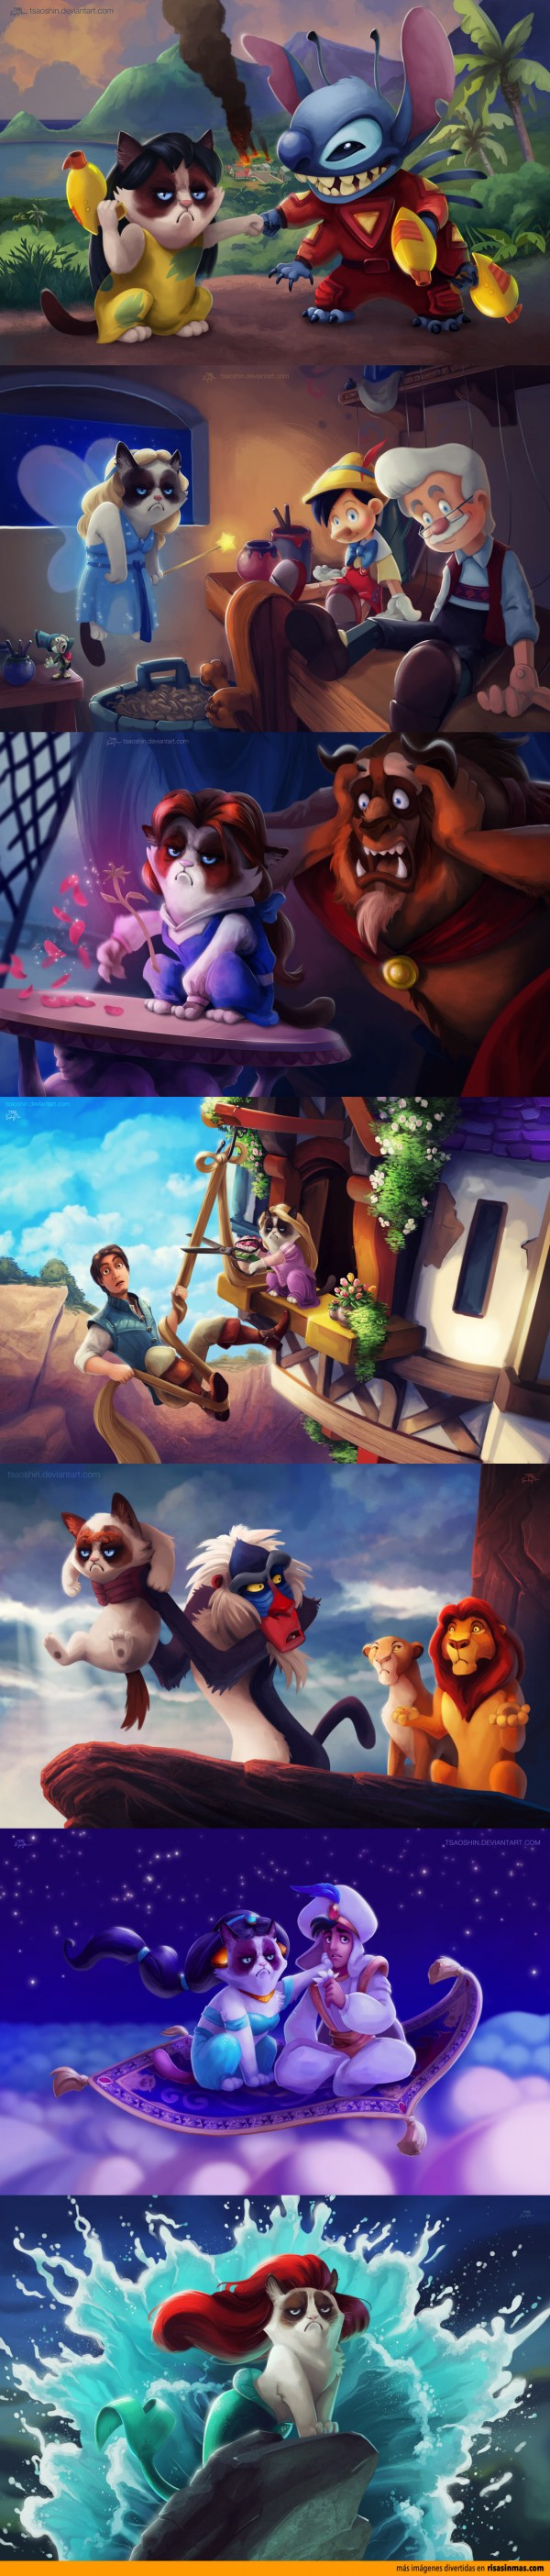 Personajes de Disney interpretados por Grumpy Cat